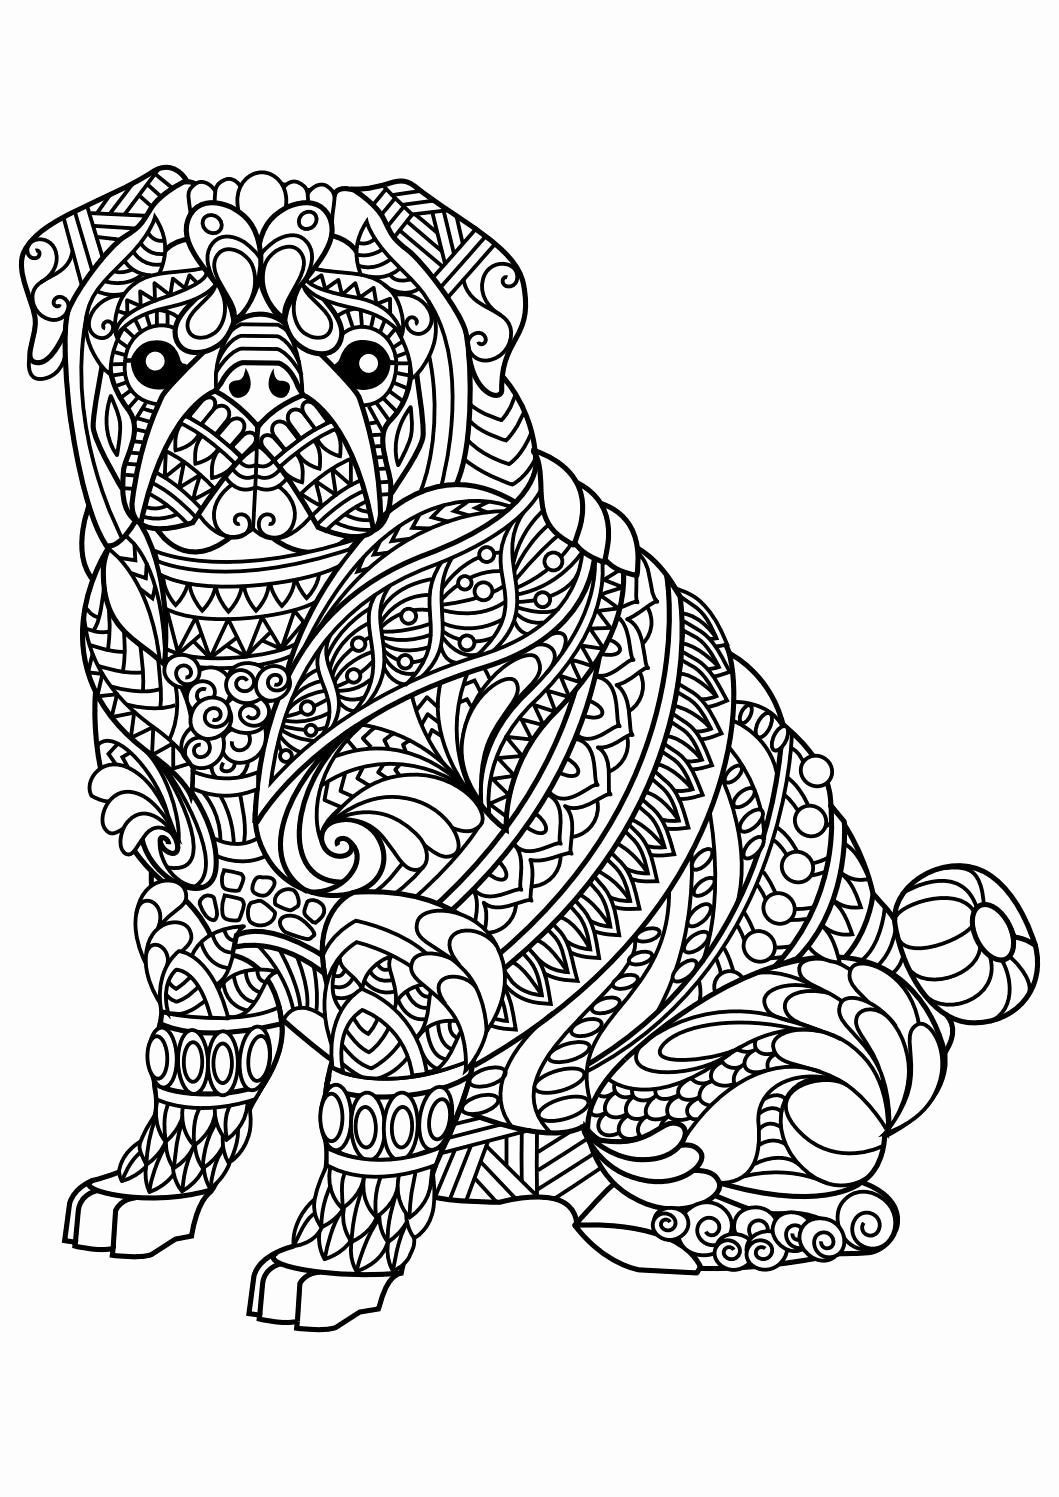 Dog Coloring Pages For Adults Best Of Animal Coloring Pages Pdf In 2020 Dog Coloring Book Horse Coloring Pages Dog Coloring Page